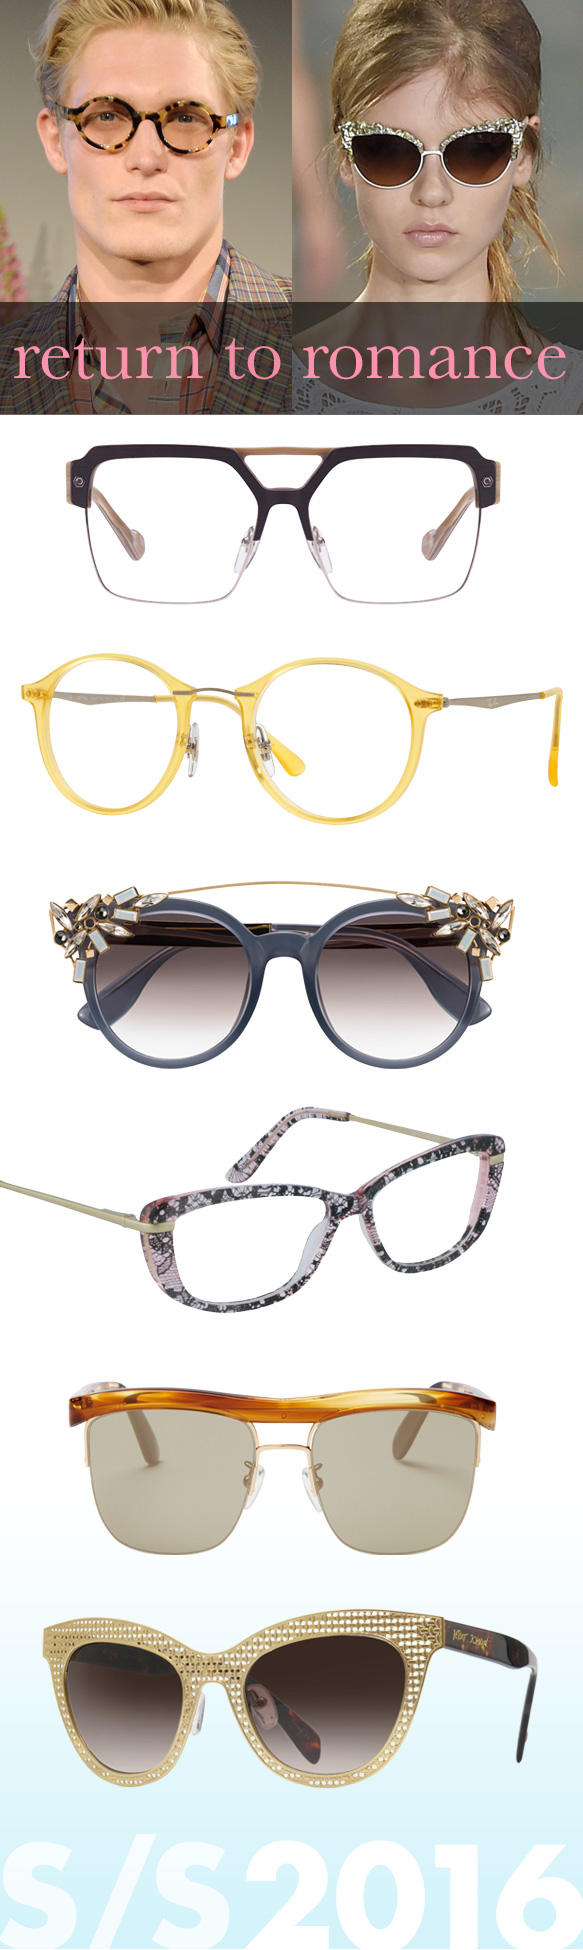 Kingsley Rowe (Sloan), Ray-Ban (RX 7073), Jimmy Choo (Vivy/S), GRACE (7070), TOMS (Locke), Betsey Johnson (Shine)